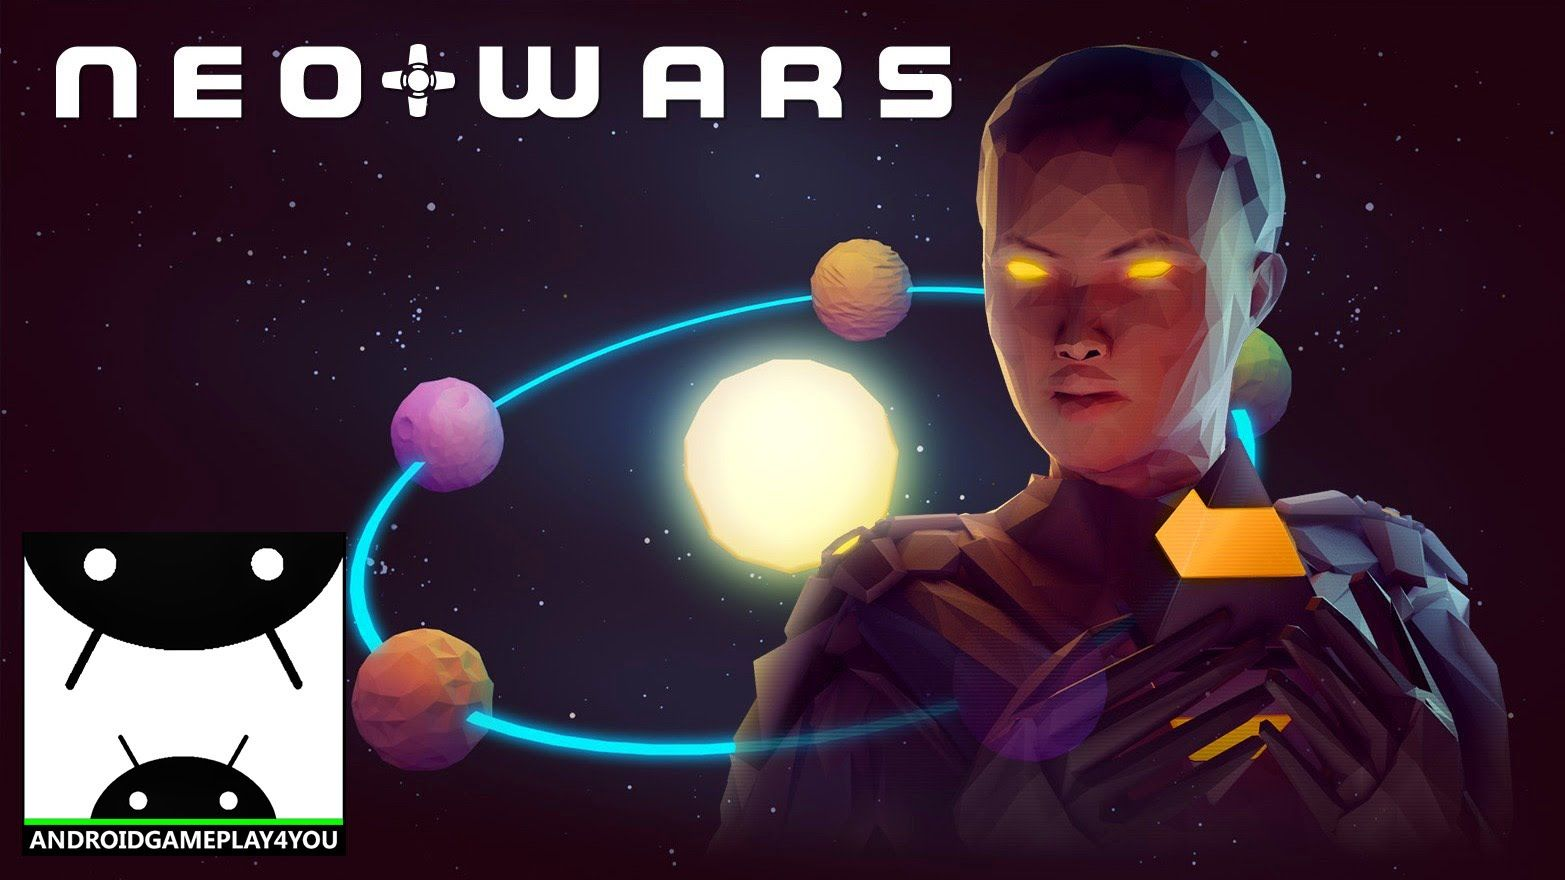 NeoWars Android GamePlay Trailer (By Microtale)